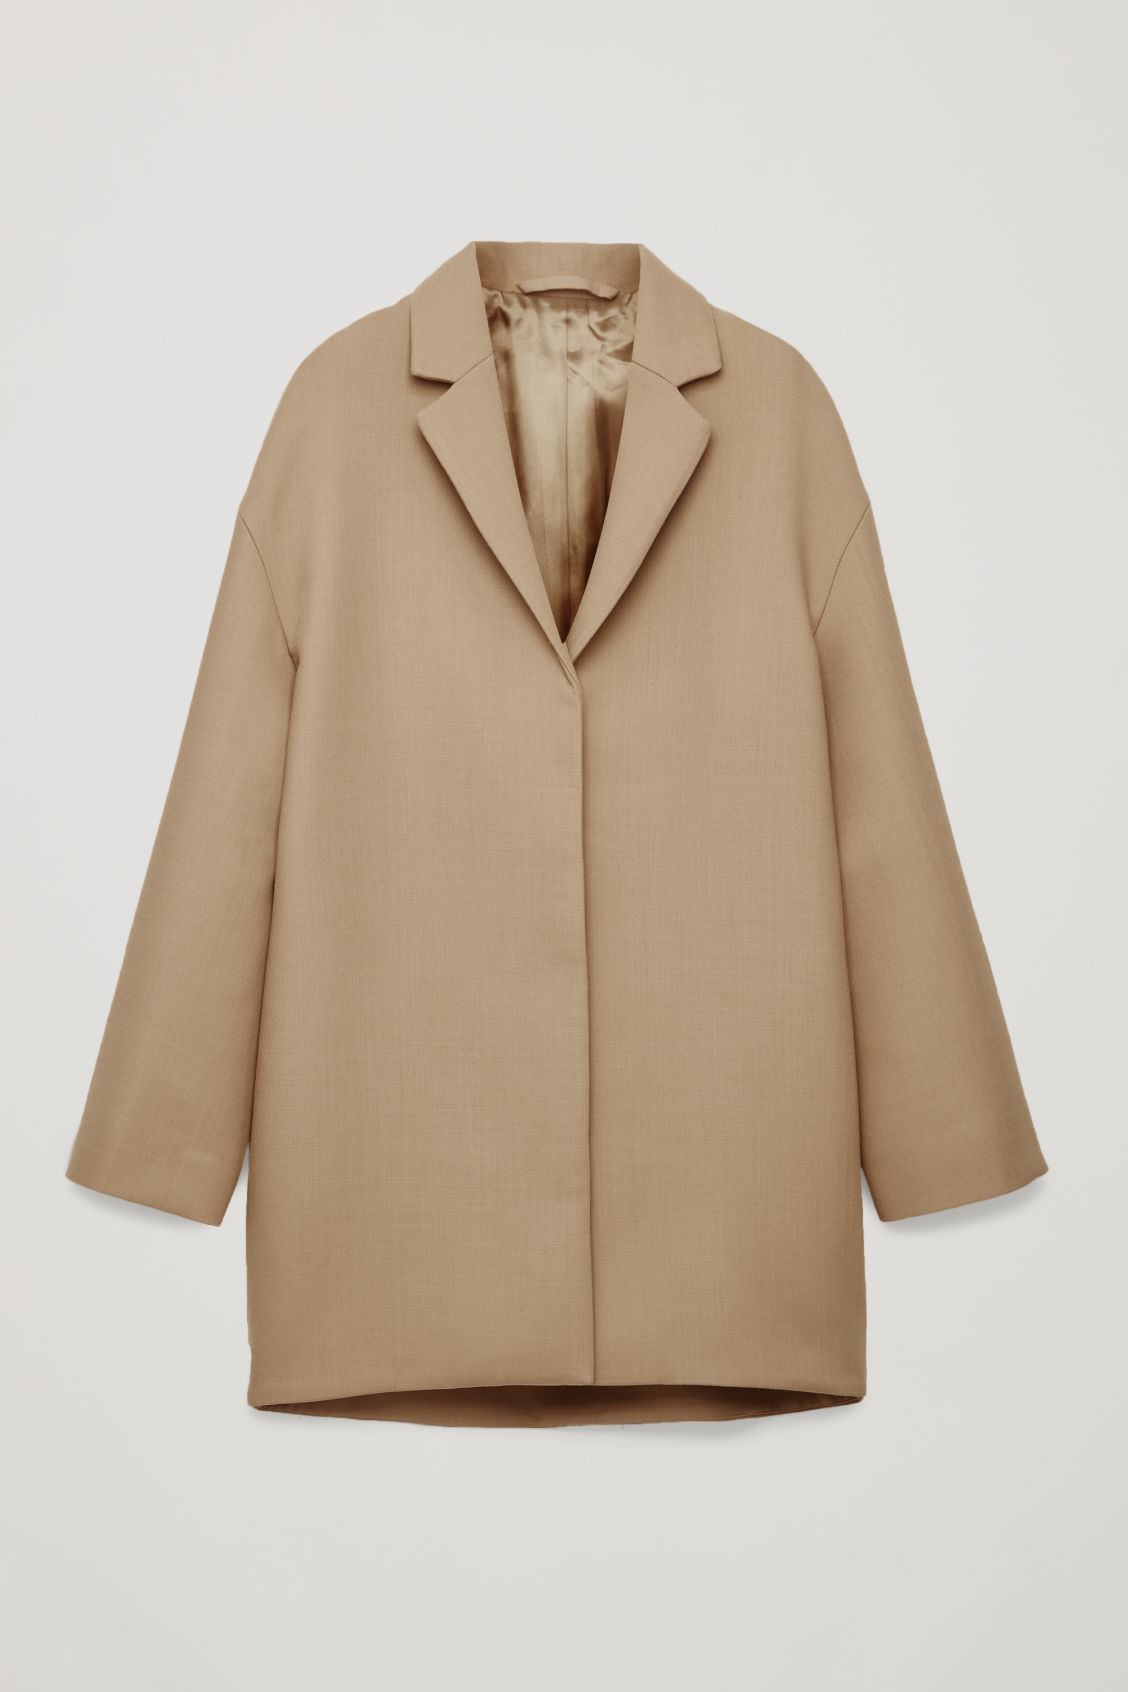 Wool-Blend Cocoon Coat in Beige from COS